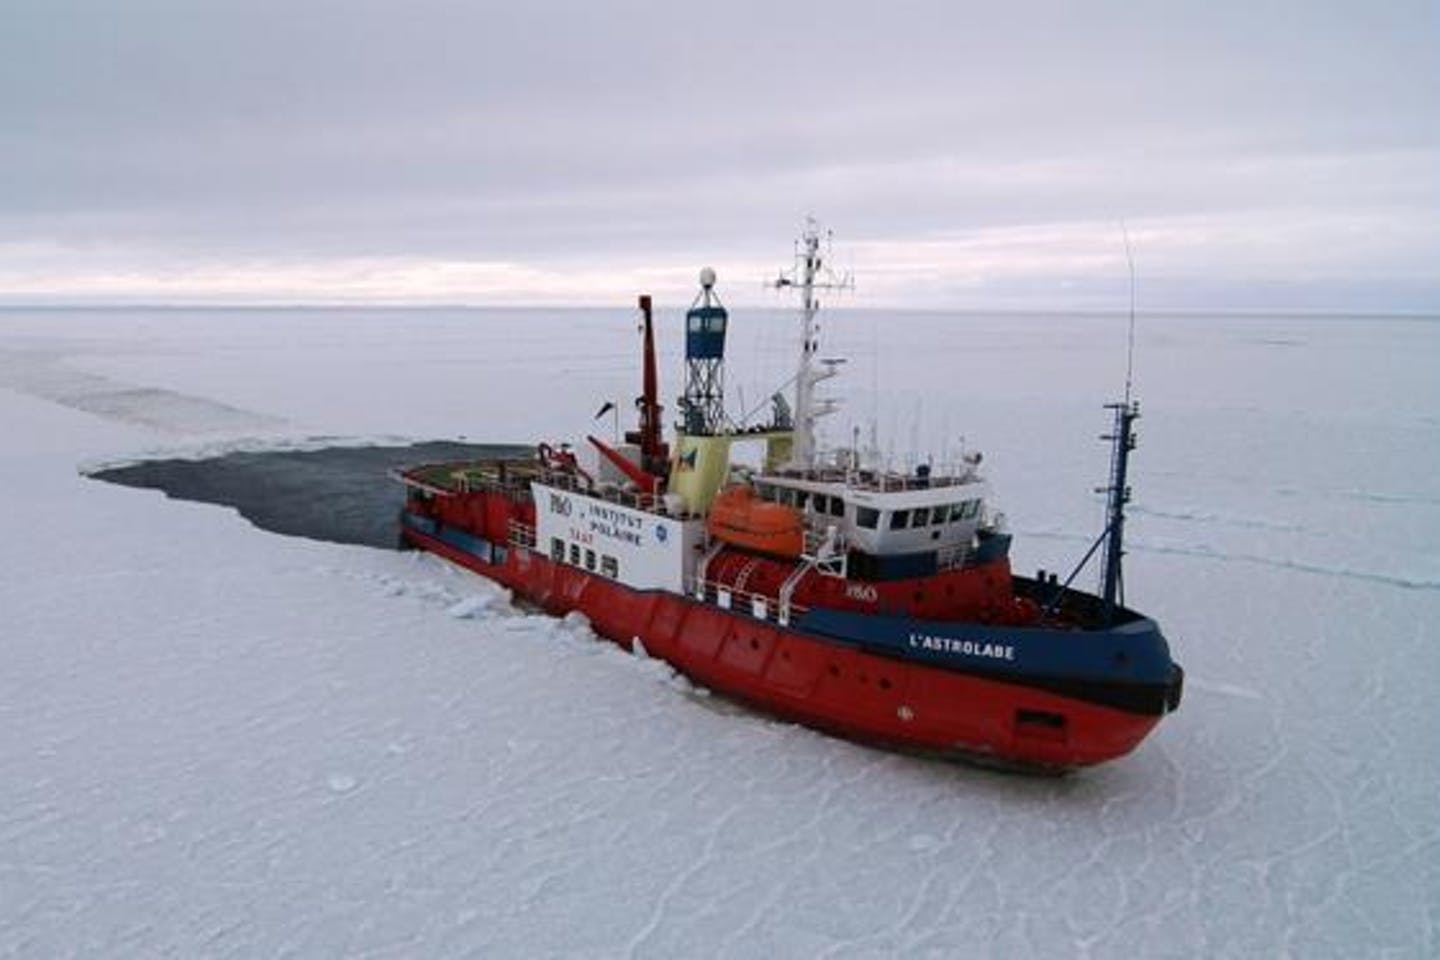 Antarctica ice-blocked vessel